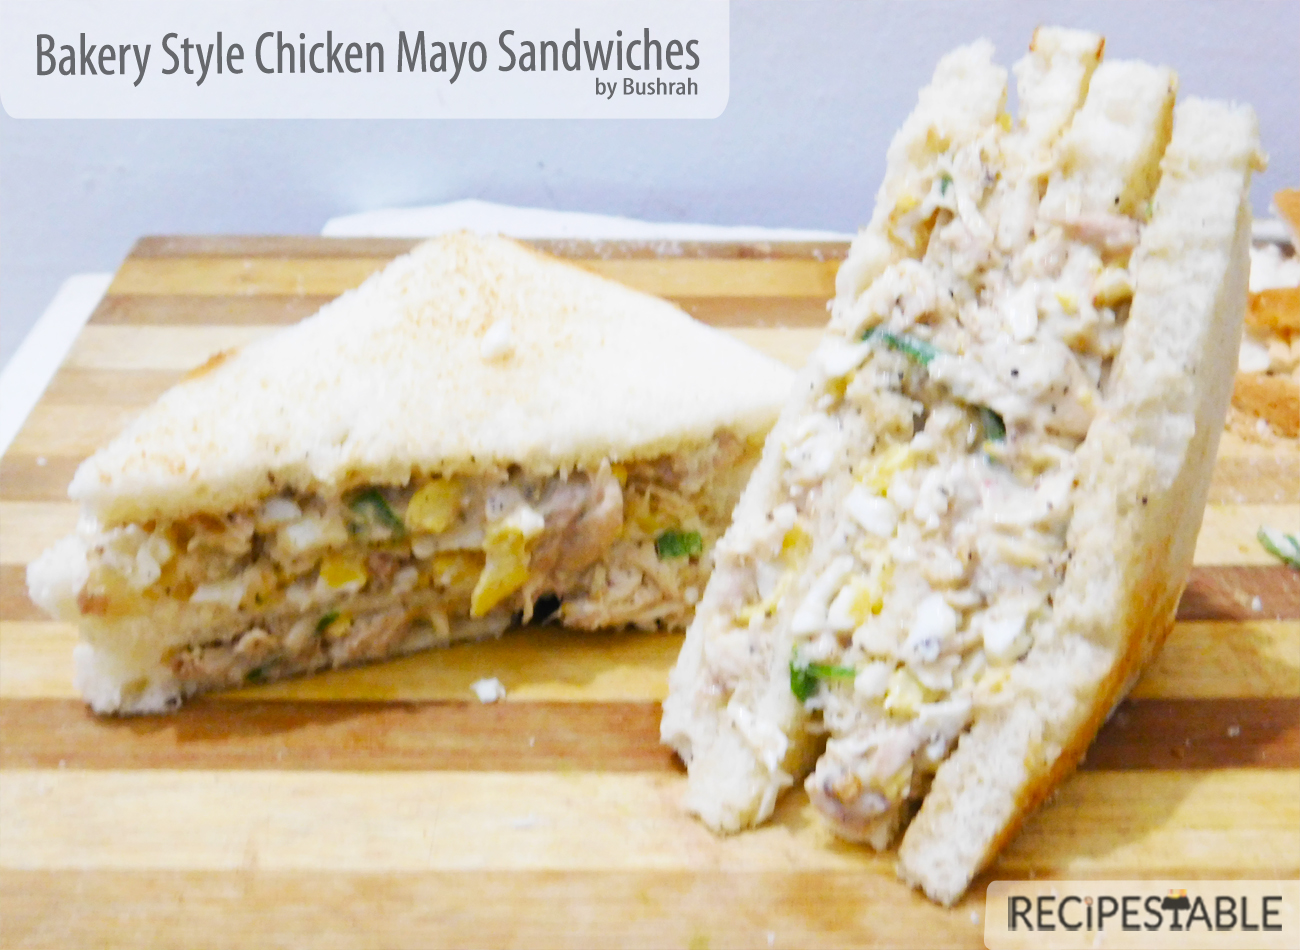 Bakery Style Chicken Mayo Sandwiches Recipe Recipestable